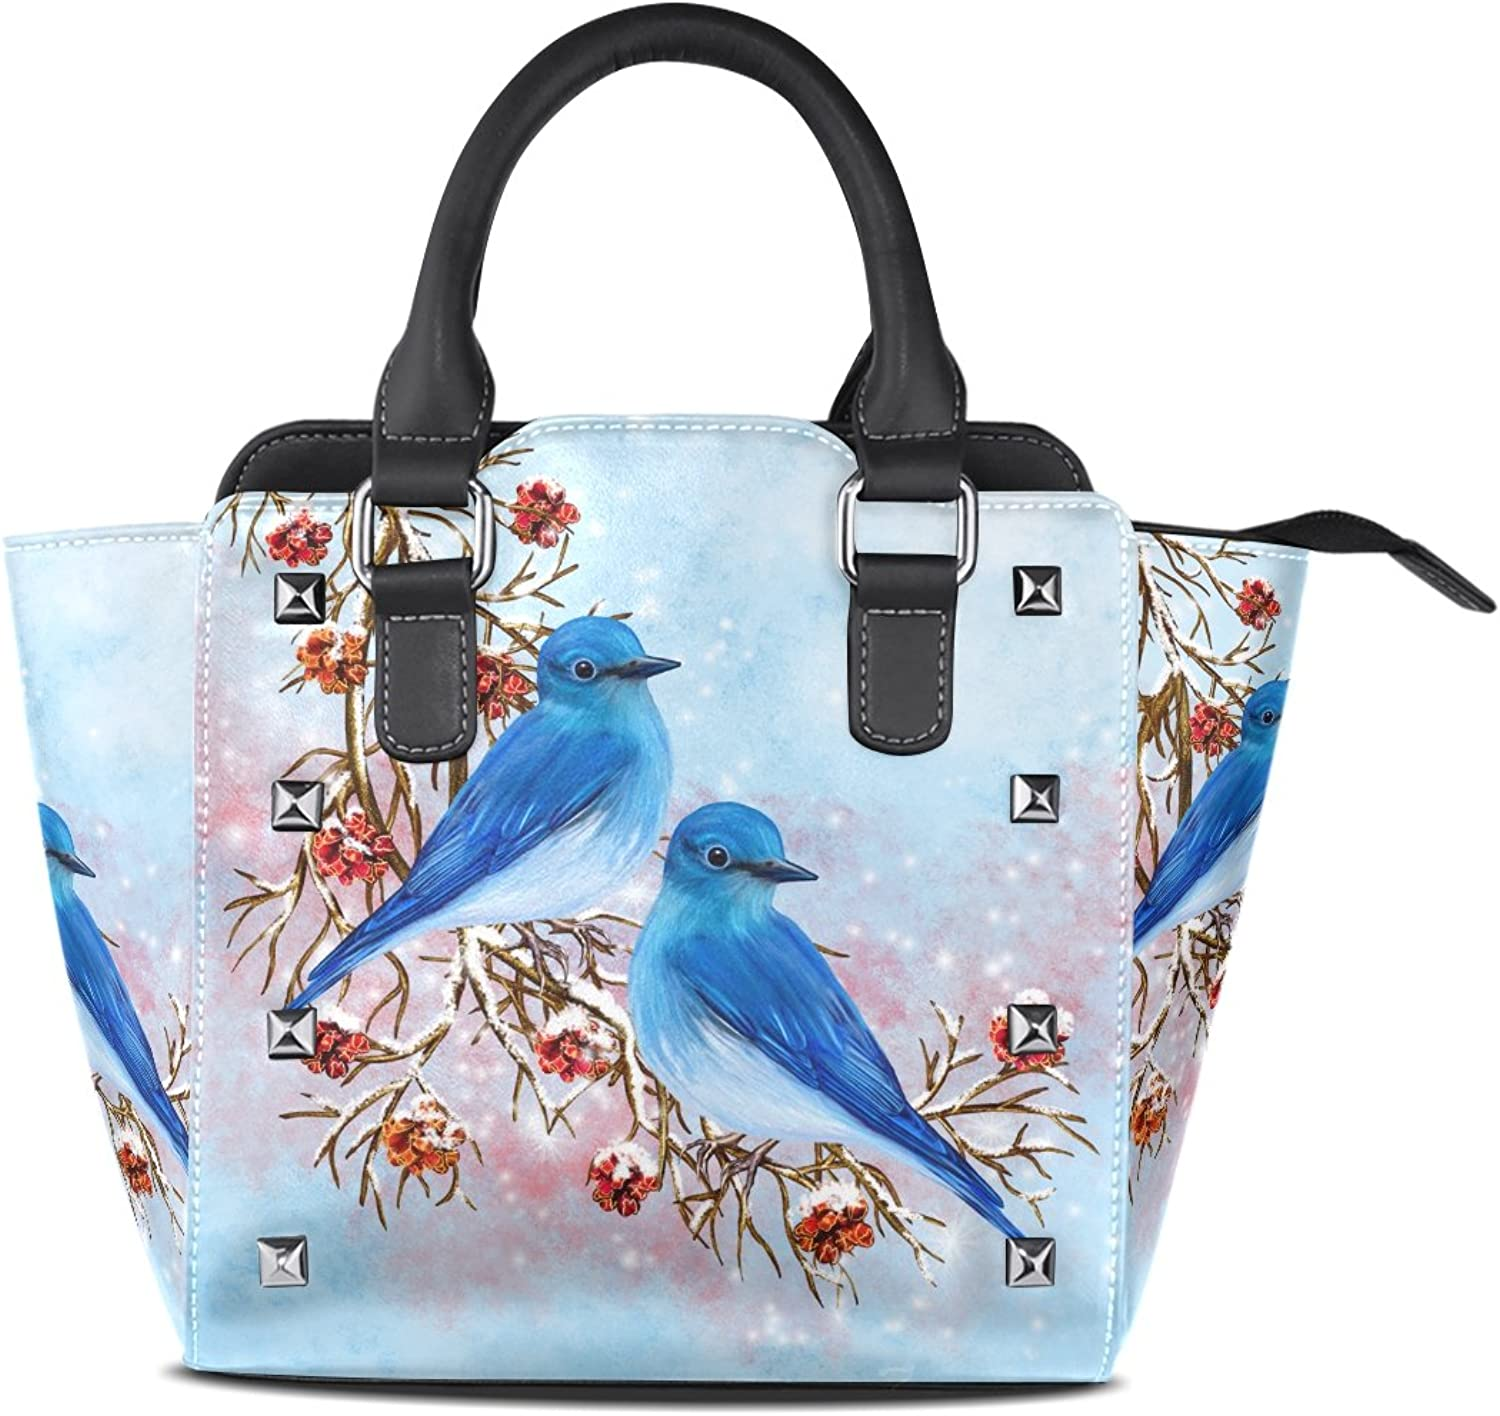 My Little Nest Women's Top Handle Satchel Handbag Two bluee Birds Ladies PU Leather Shoulder Bag Crossbody Bag